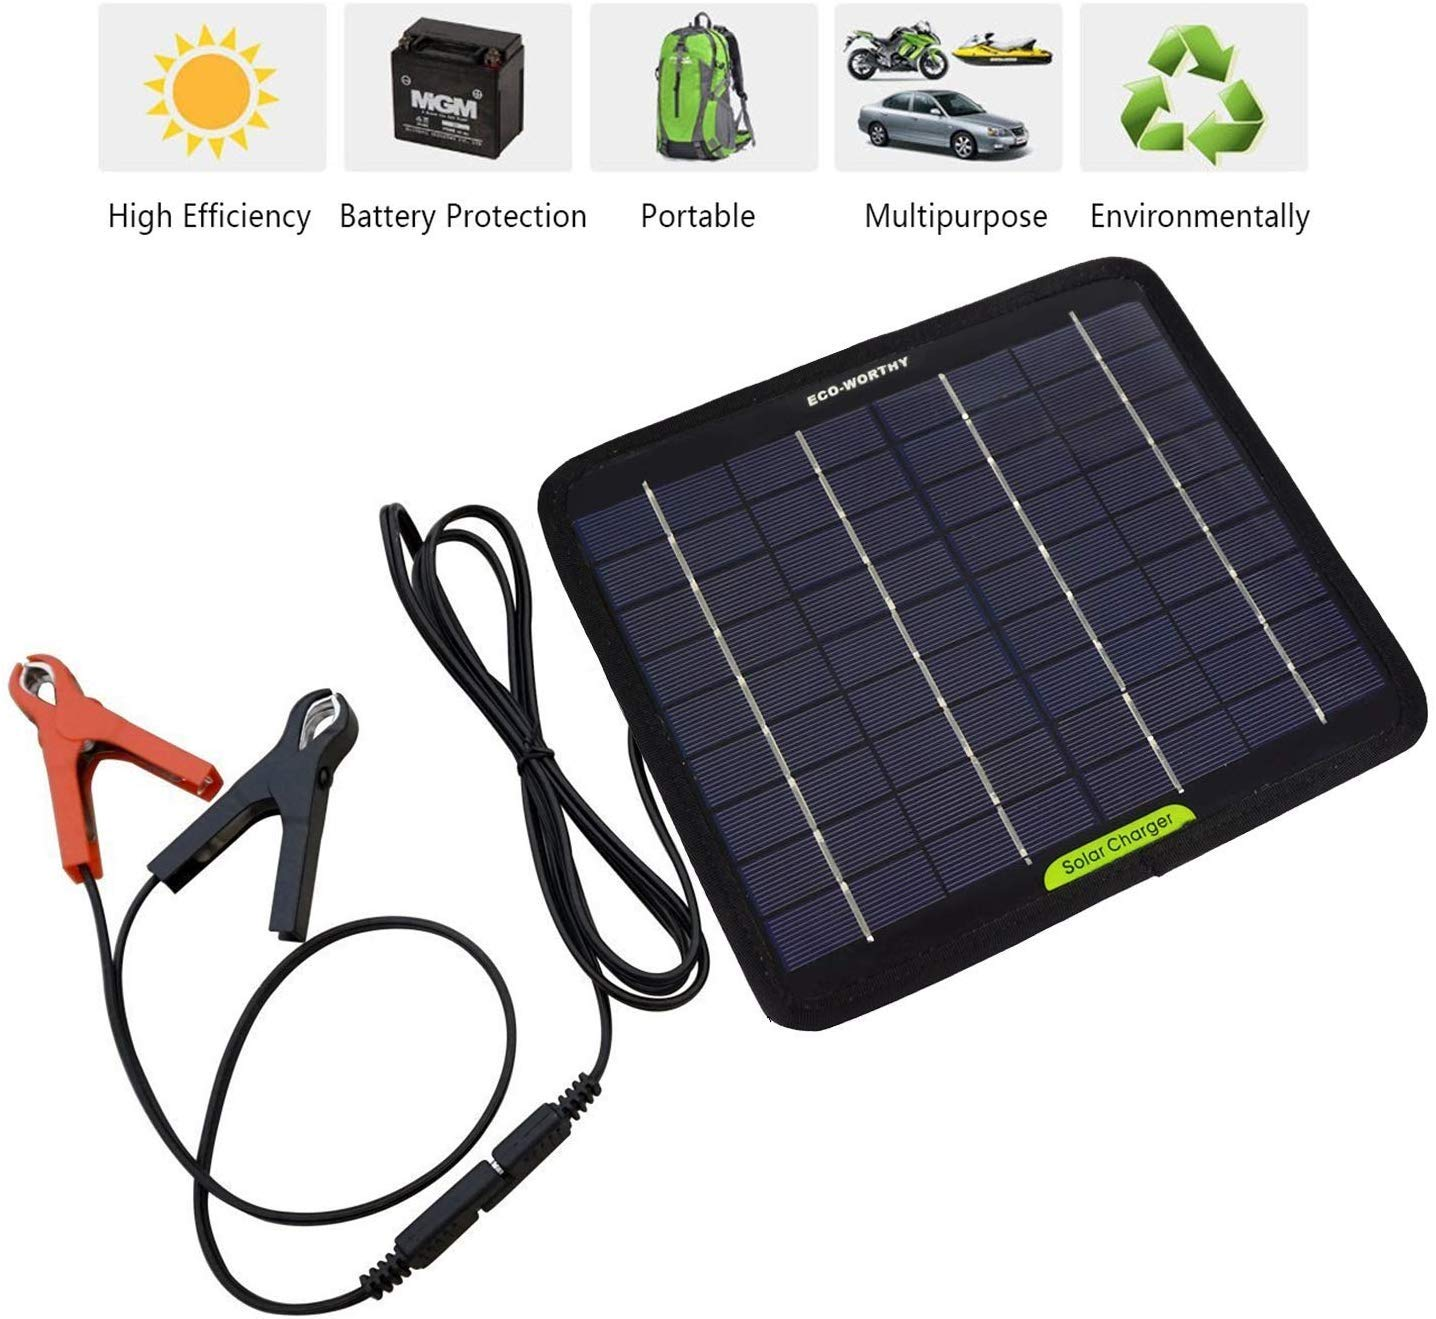 ECOWORTHY 7W 12V Portable Solar Panel Battery Trickle Charge with Battery Clip for Power Car van Caravan Boats